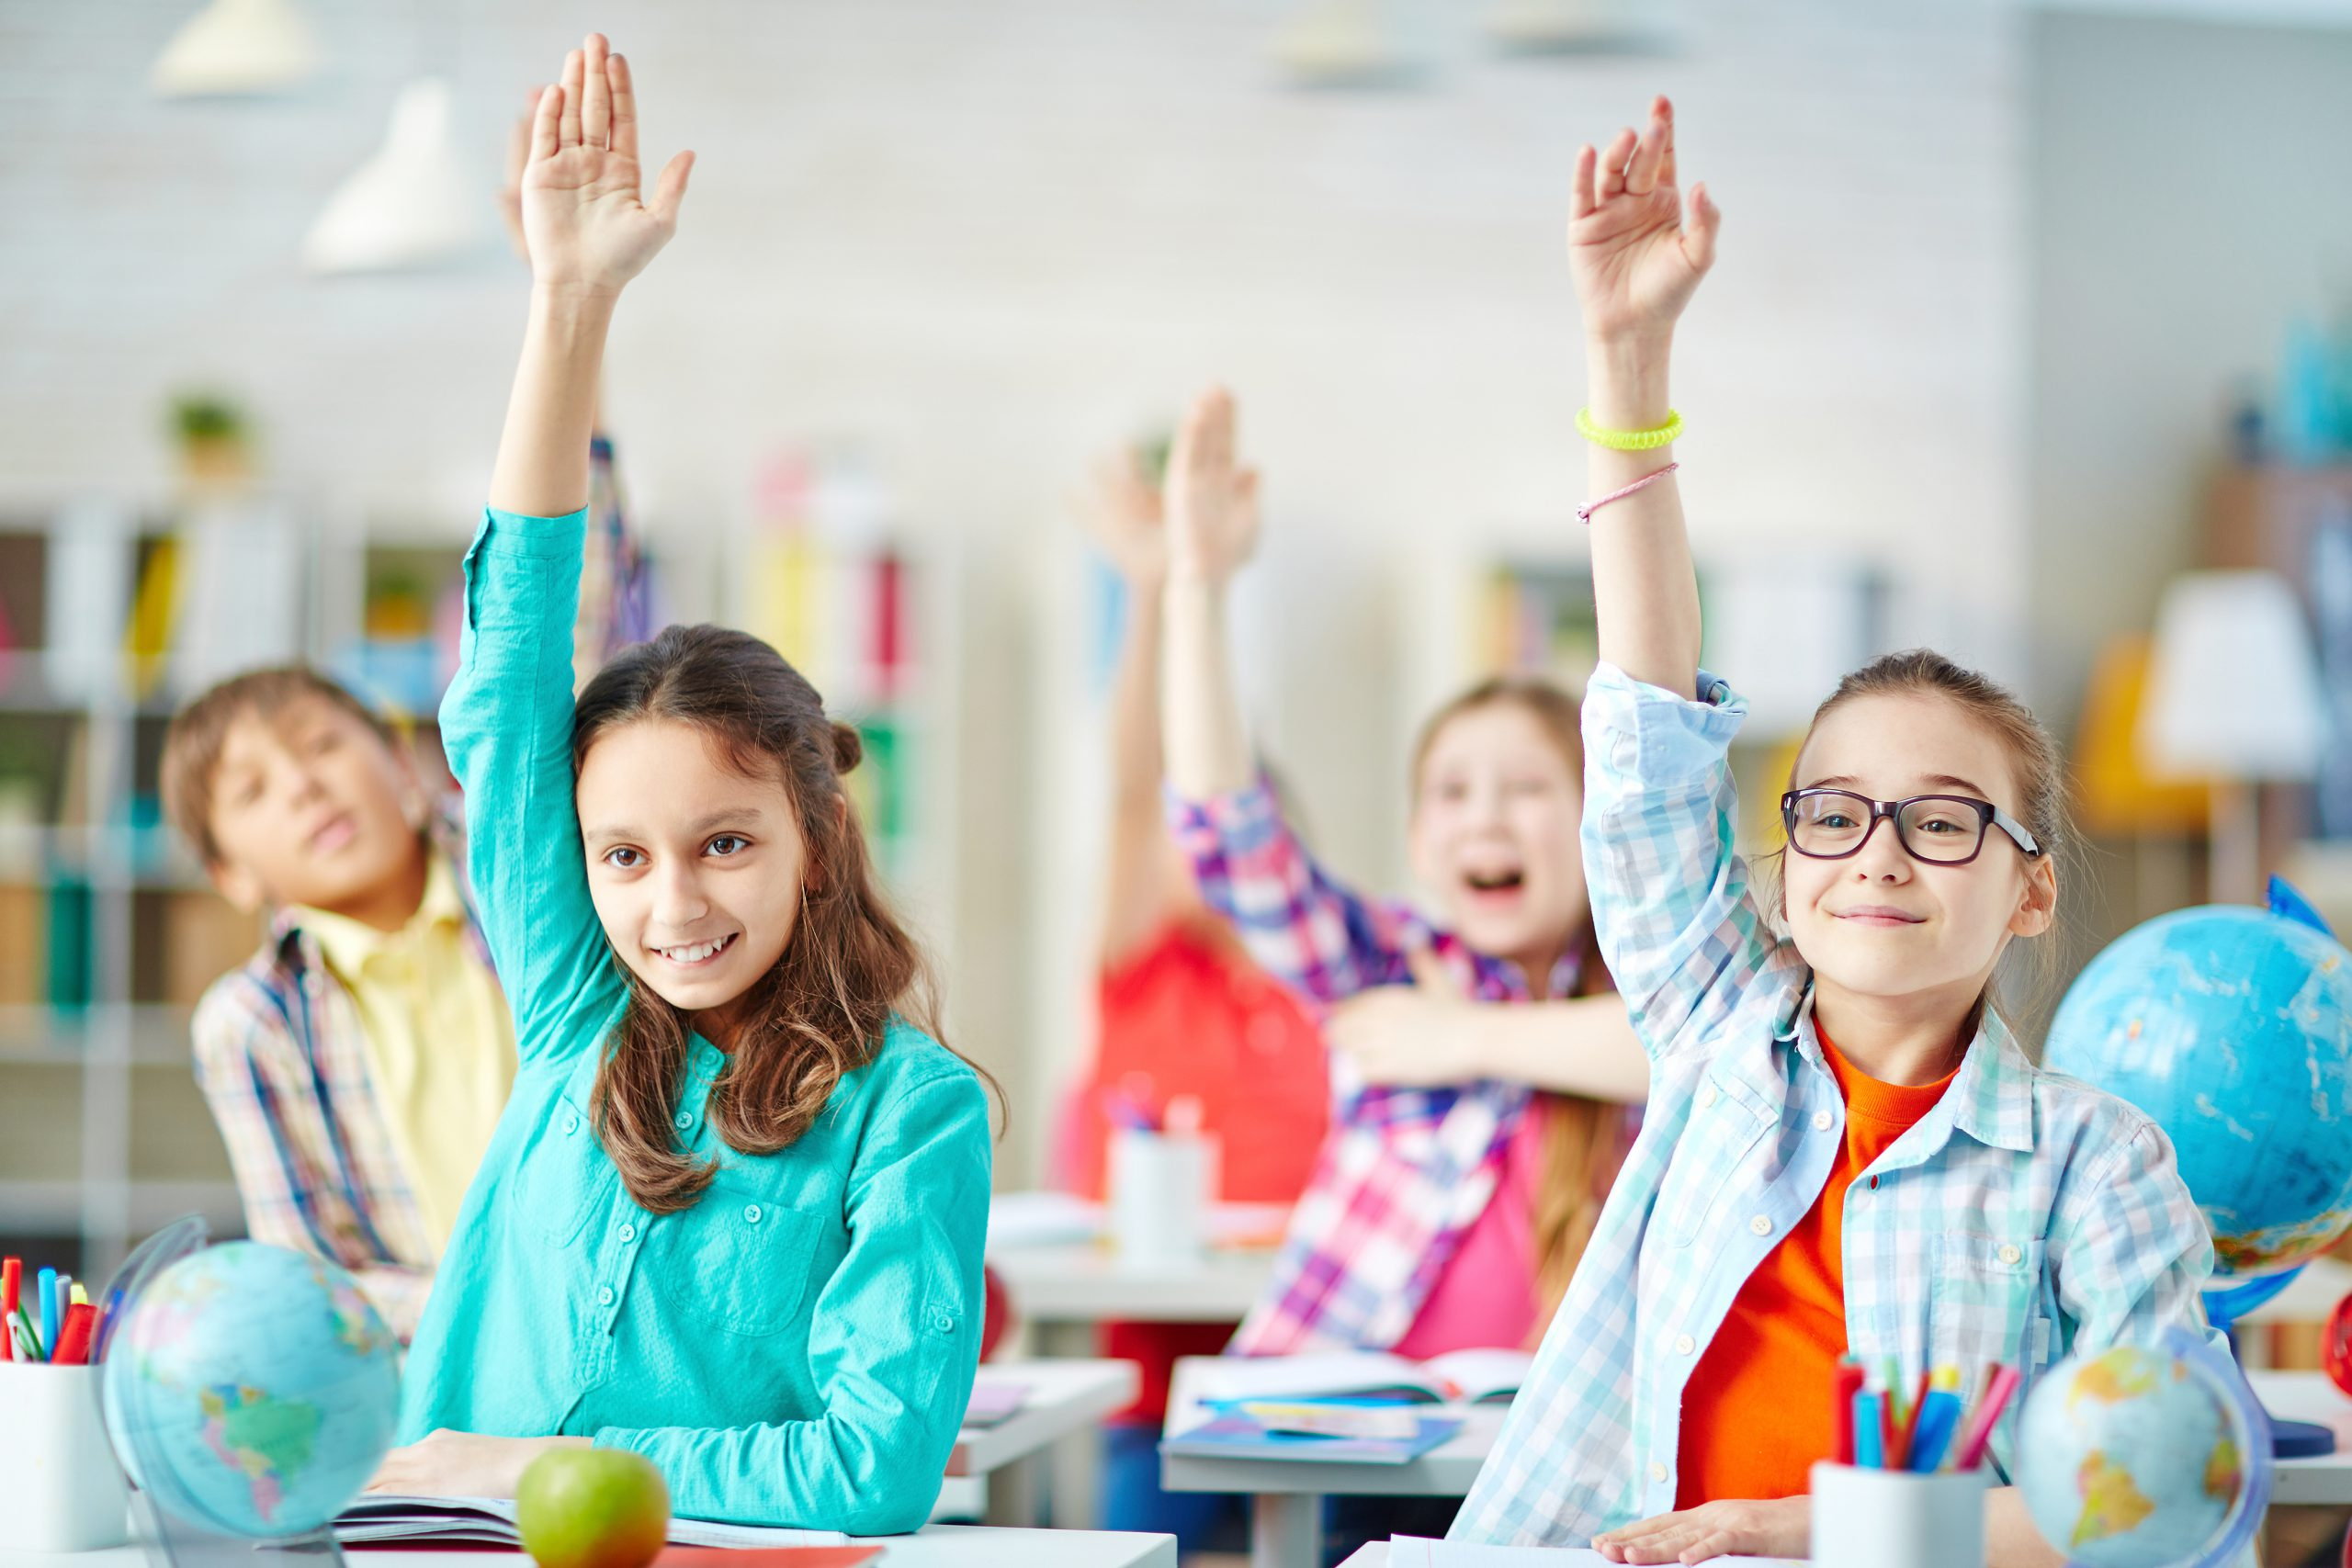 Classroom Of Kids Raising Hands